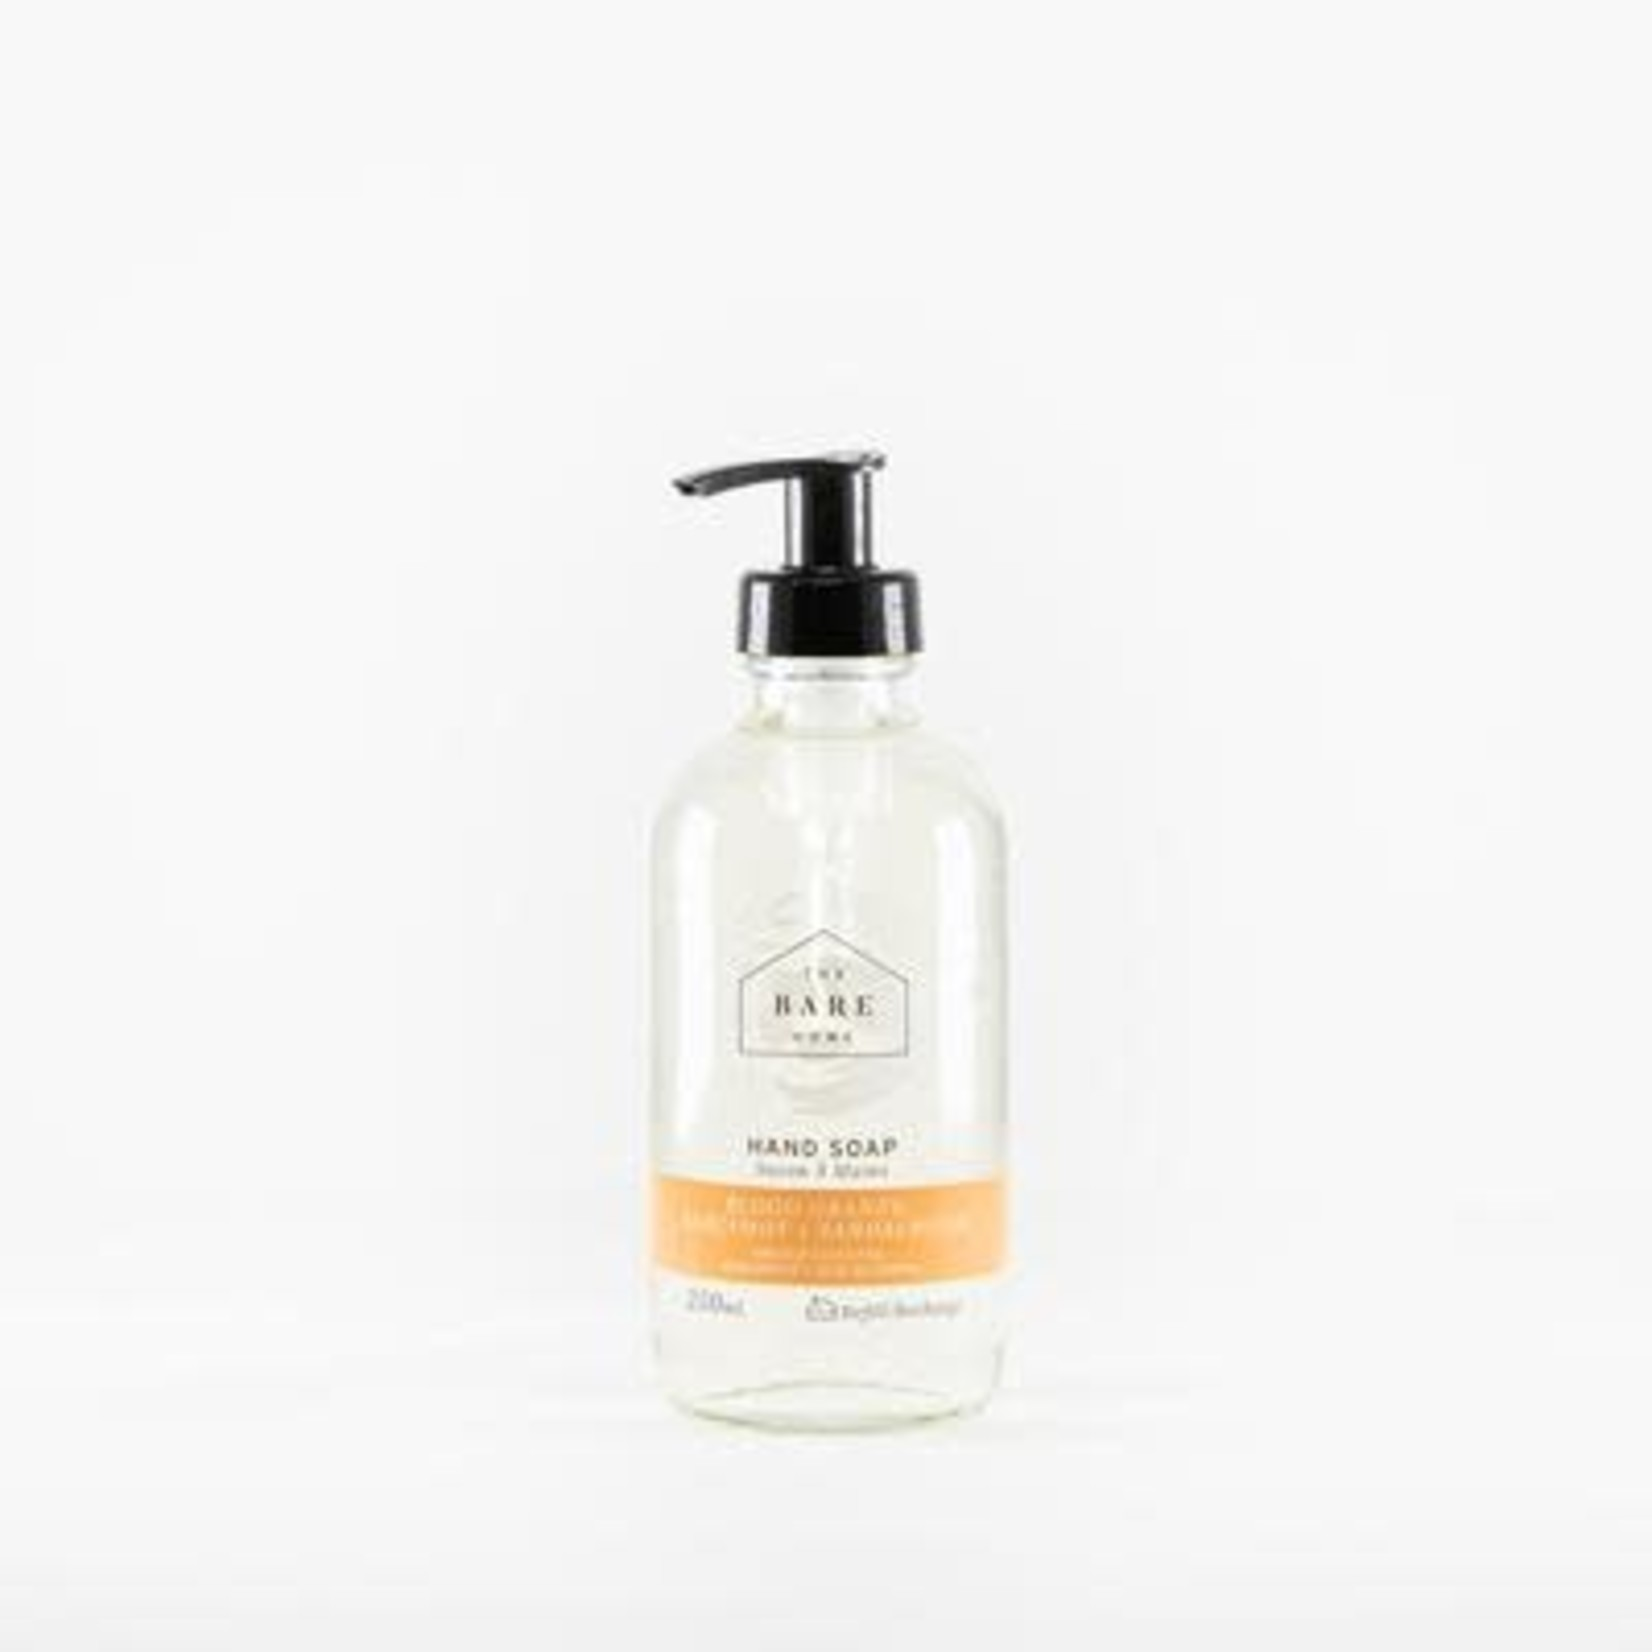 The Bare Home The Bare Home Hand Soap 500ml Blood Orange Bergamot and Sandalwood